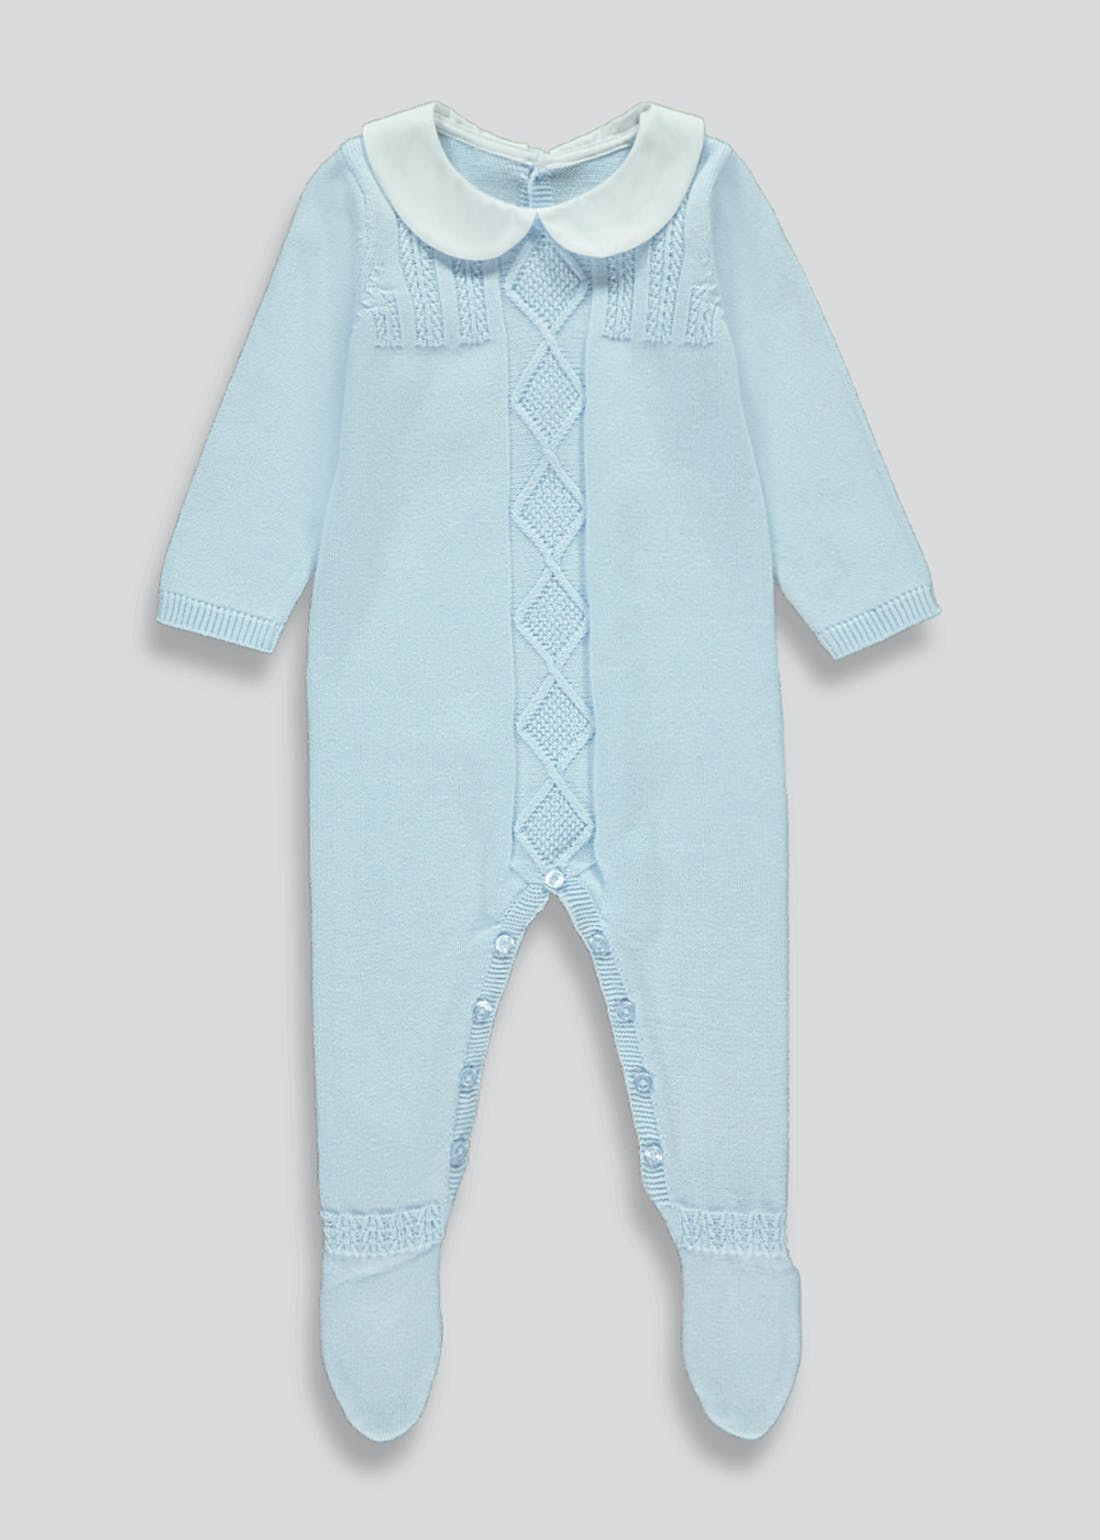 Boys Knitted Romper (Tiny Baby-18mths)